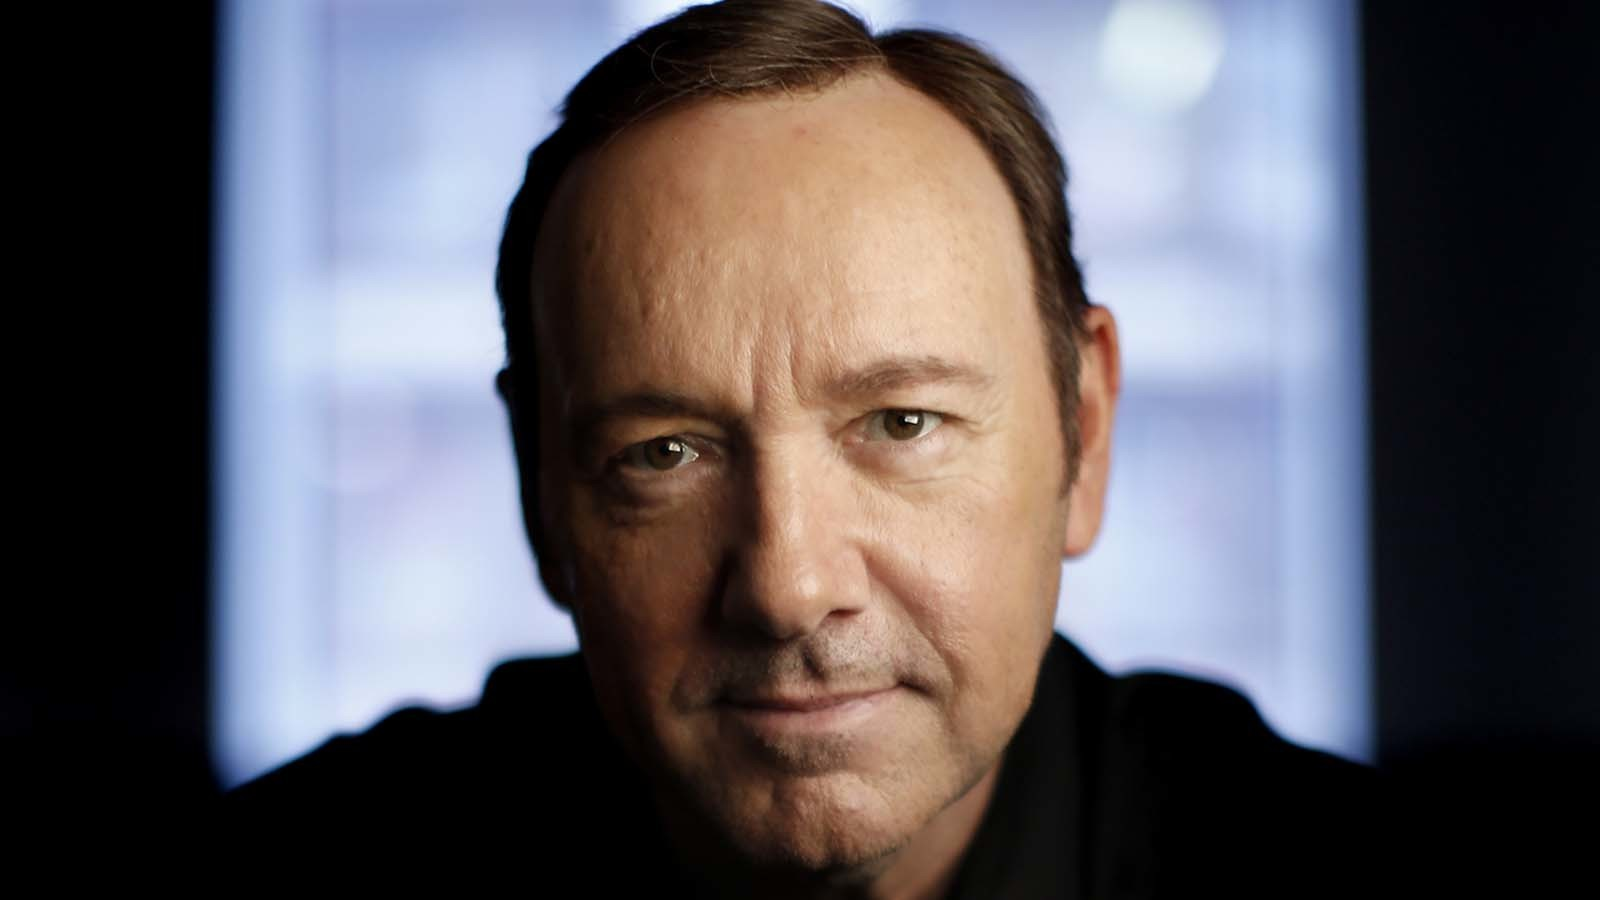 kevin spacey - photo #32